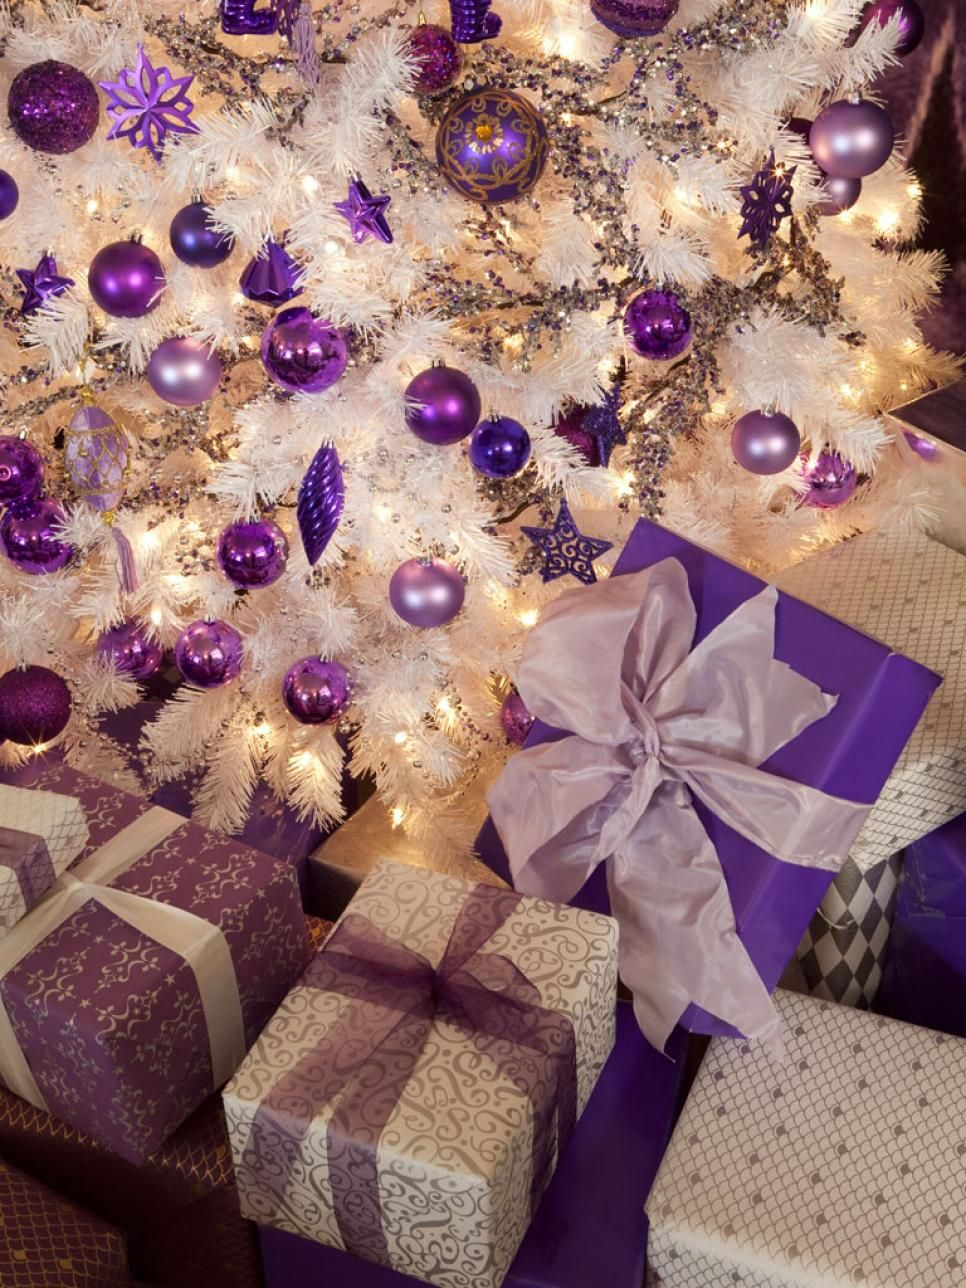 You spend so much time carefully selecting just-the-right present for everyone on your list. Give your gifts a professionally wrapped look with our tips.